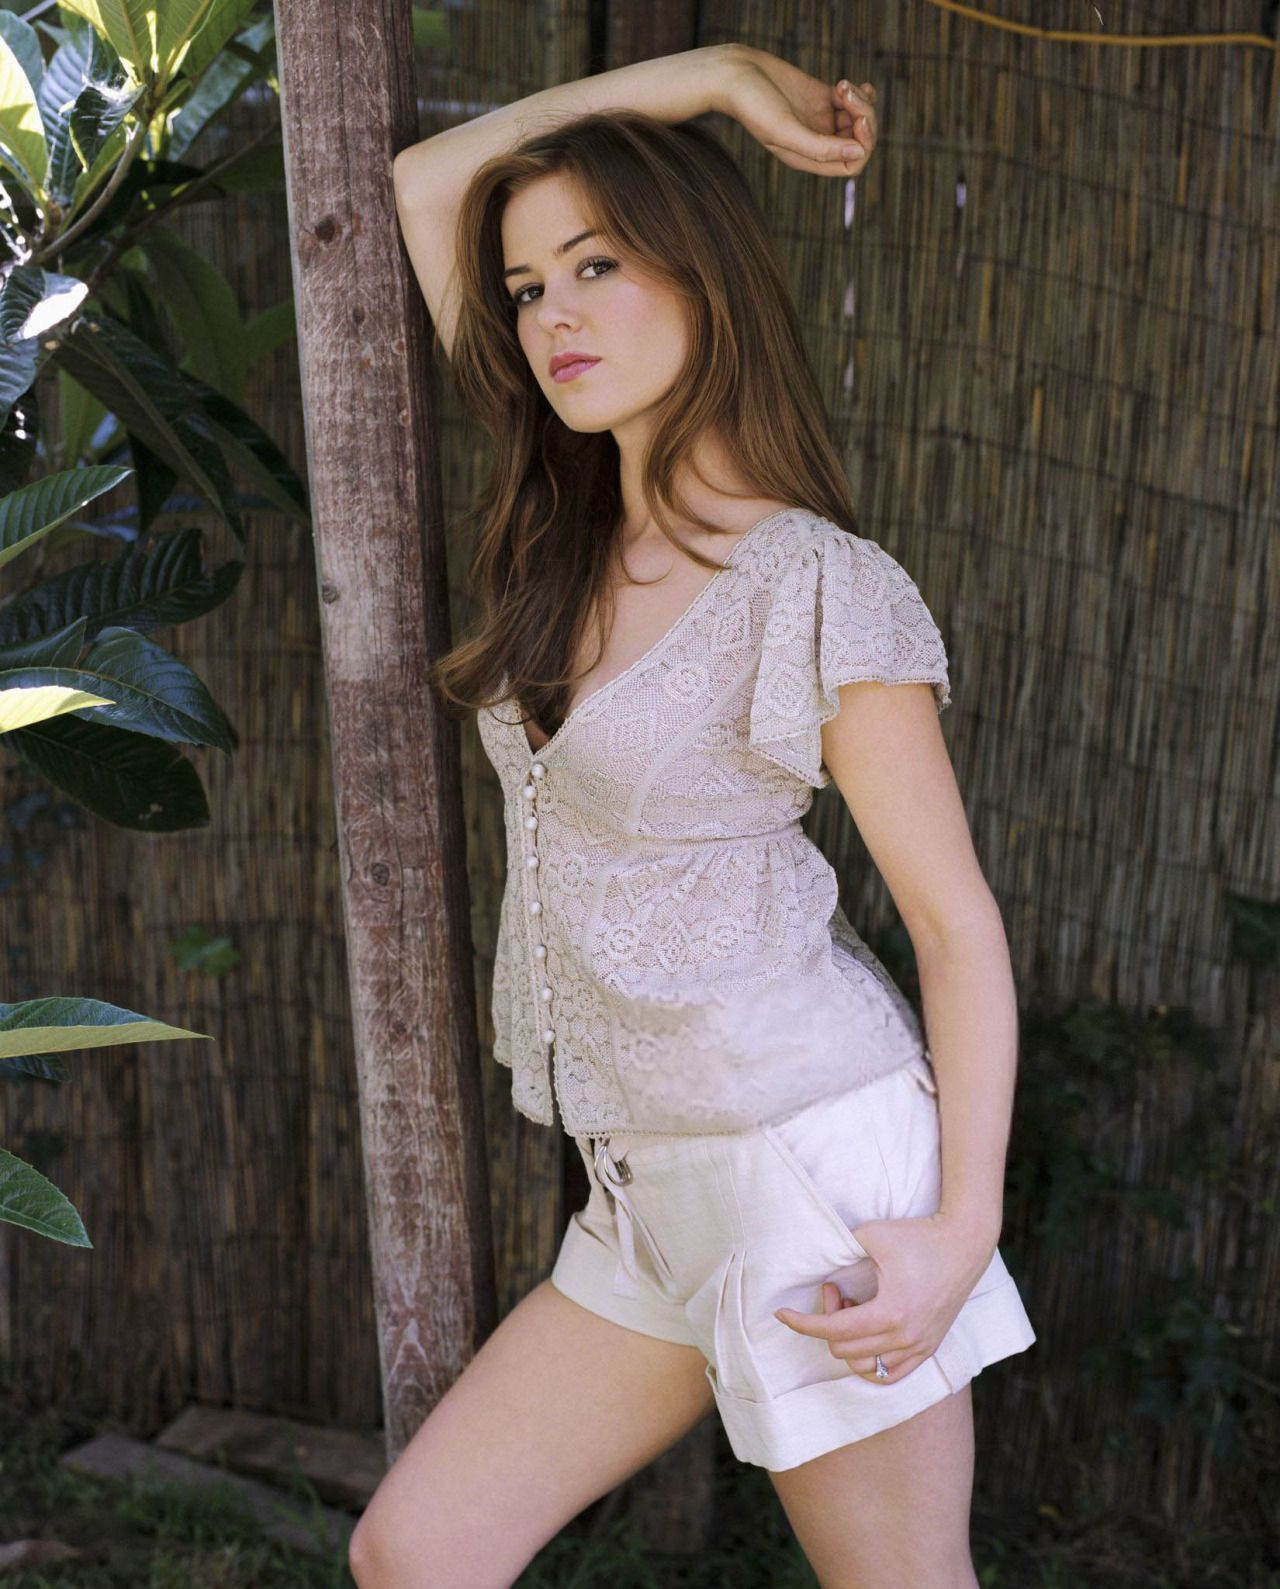 View images and find out more about Isla Fisher, Interview, July 2005 at  Getty Images.